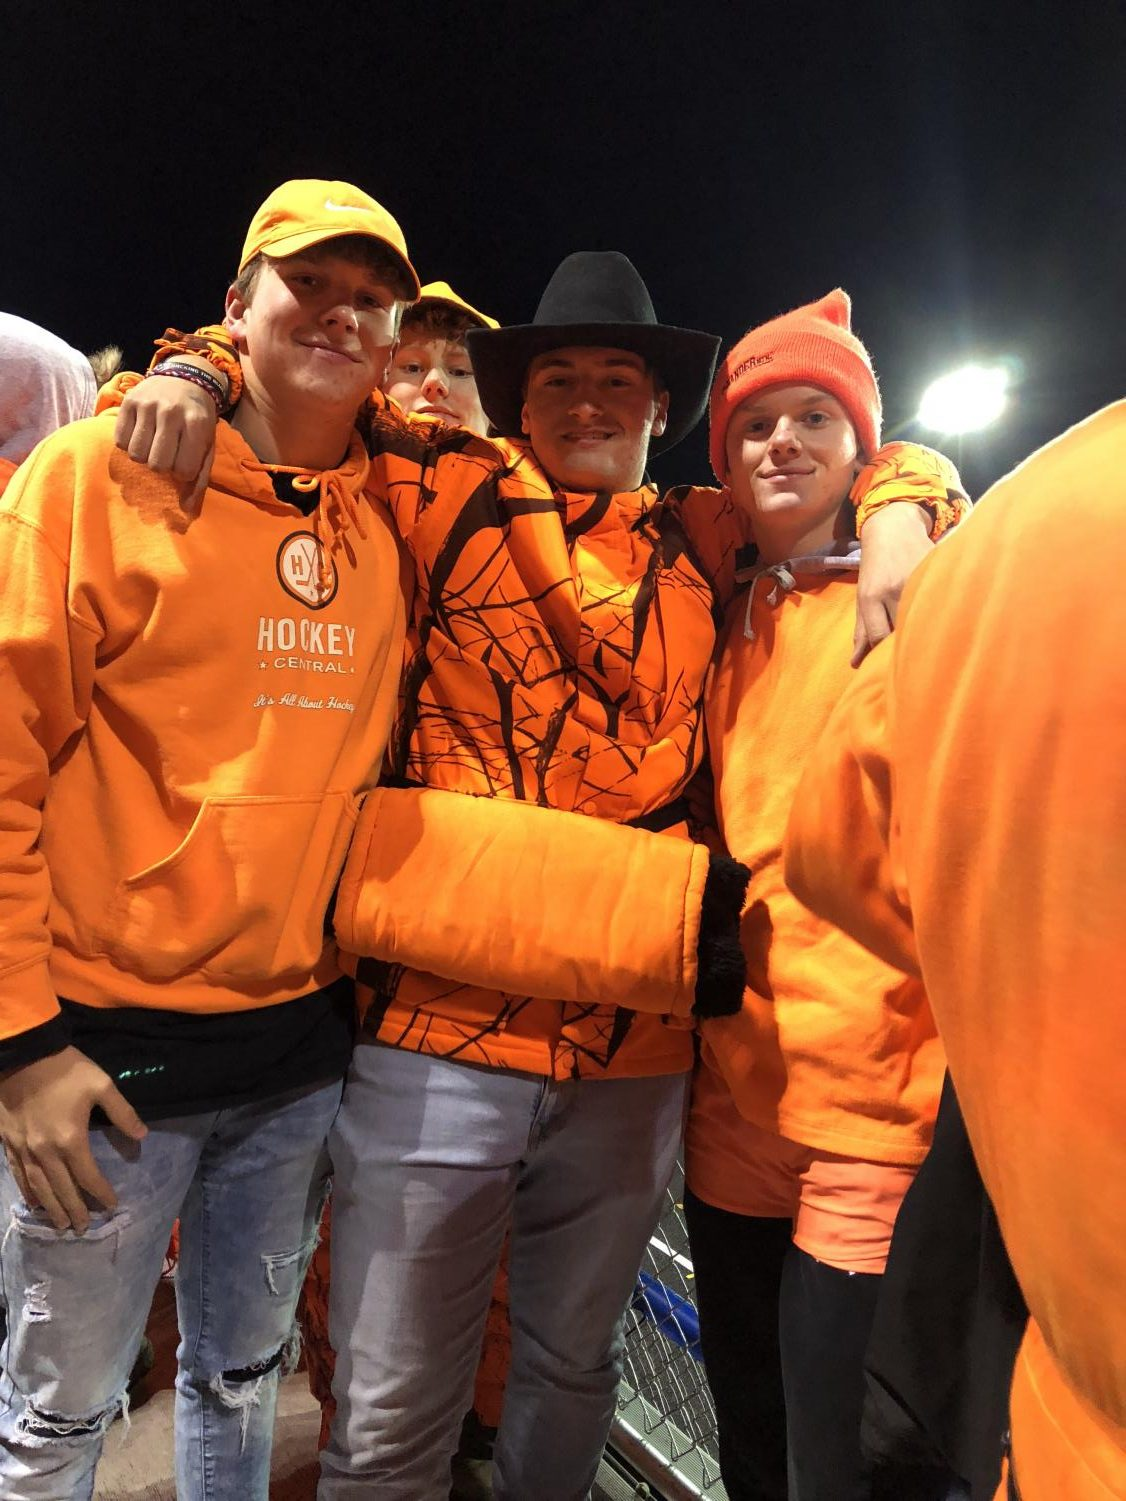 Superfans celebrated in the stands with their blaze out theme.